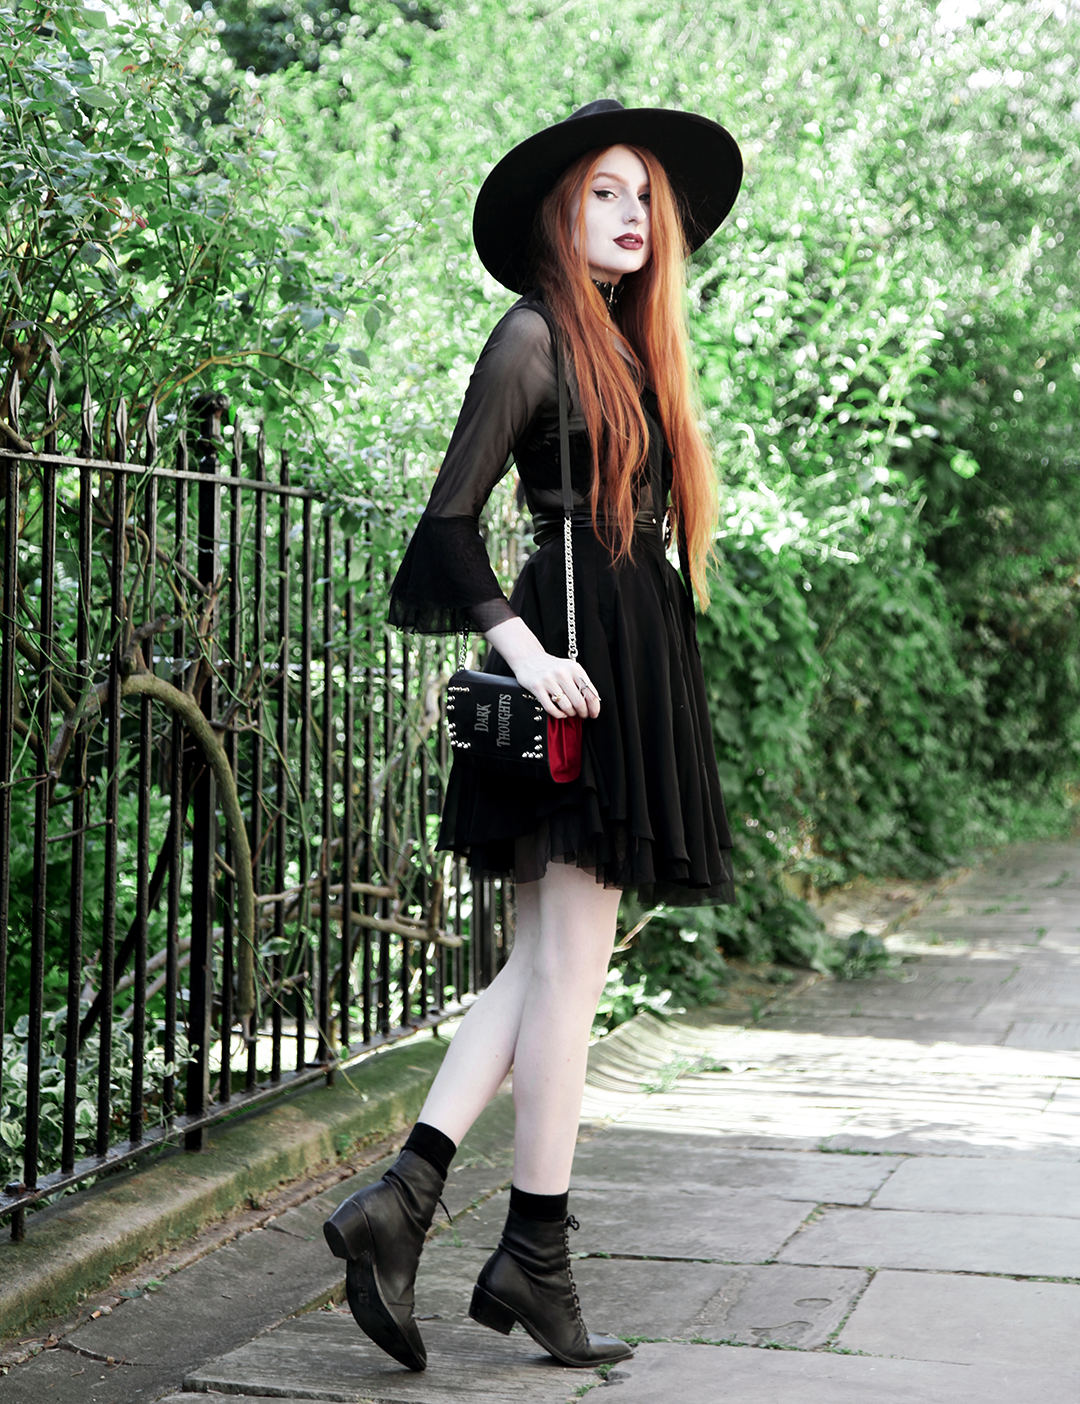 Olivia Emily wears Killstar Witch Brim Hat, Killstar Decay Nu-Mourning dress, Pheren Couture Sword Choker, Skinnybags Dark Thoughts Book Clutch and Asos Pointed Toe Boots